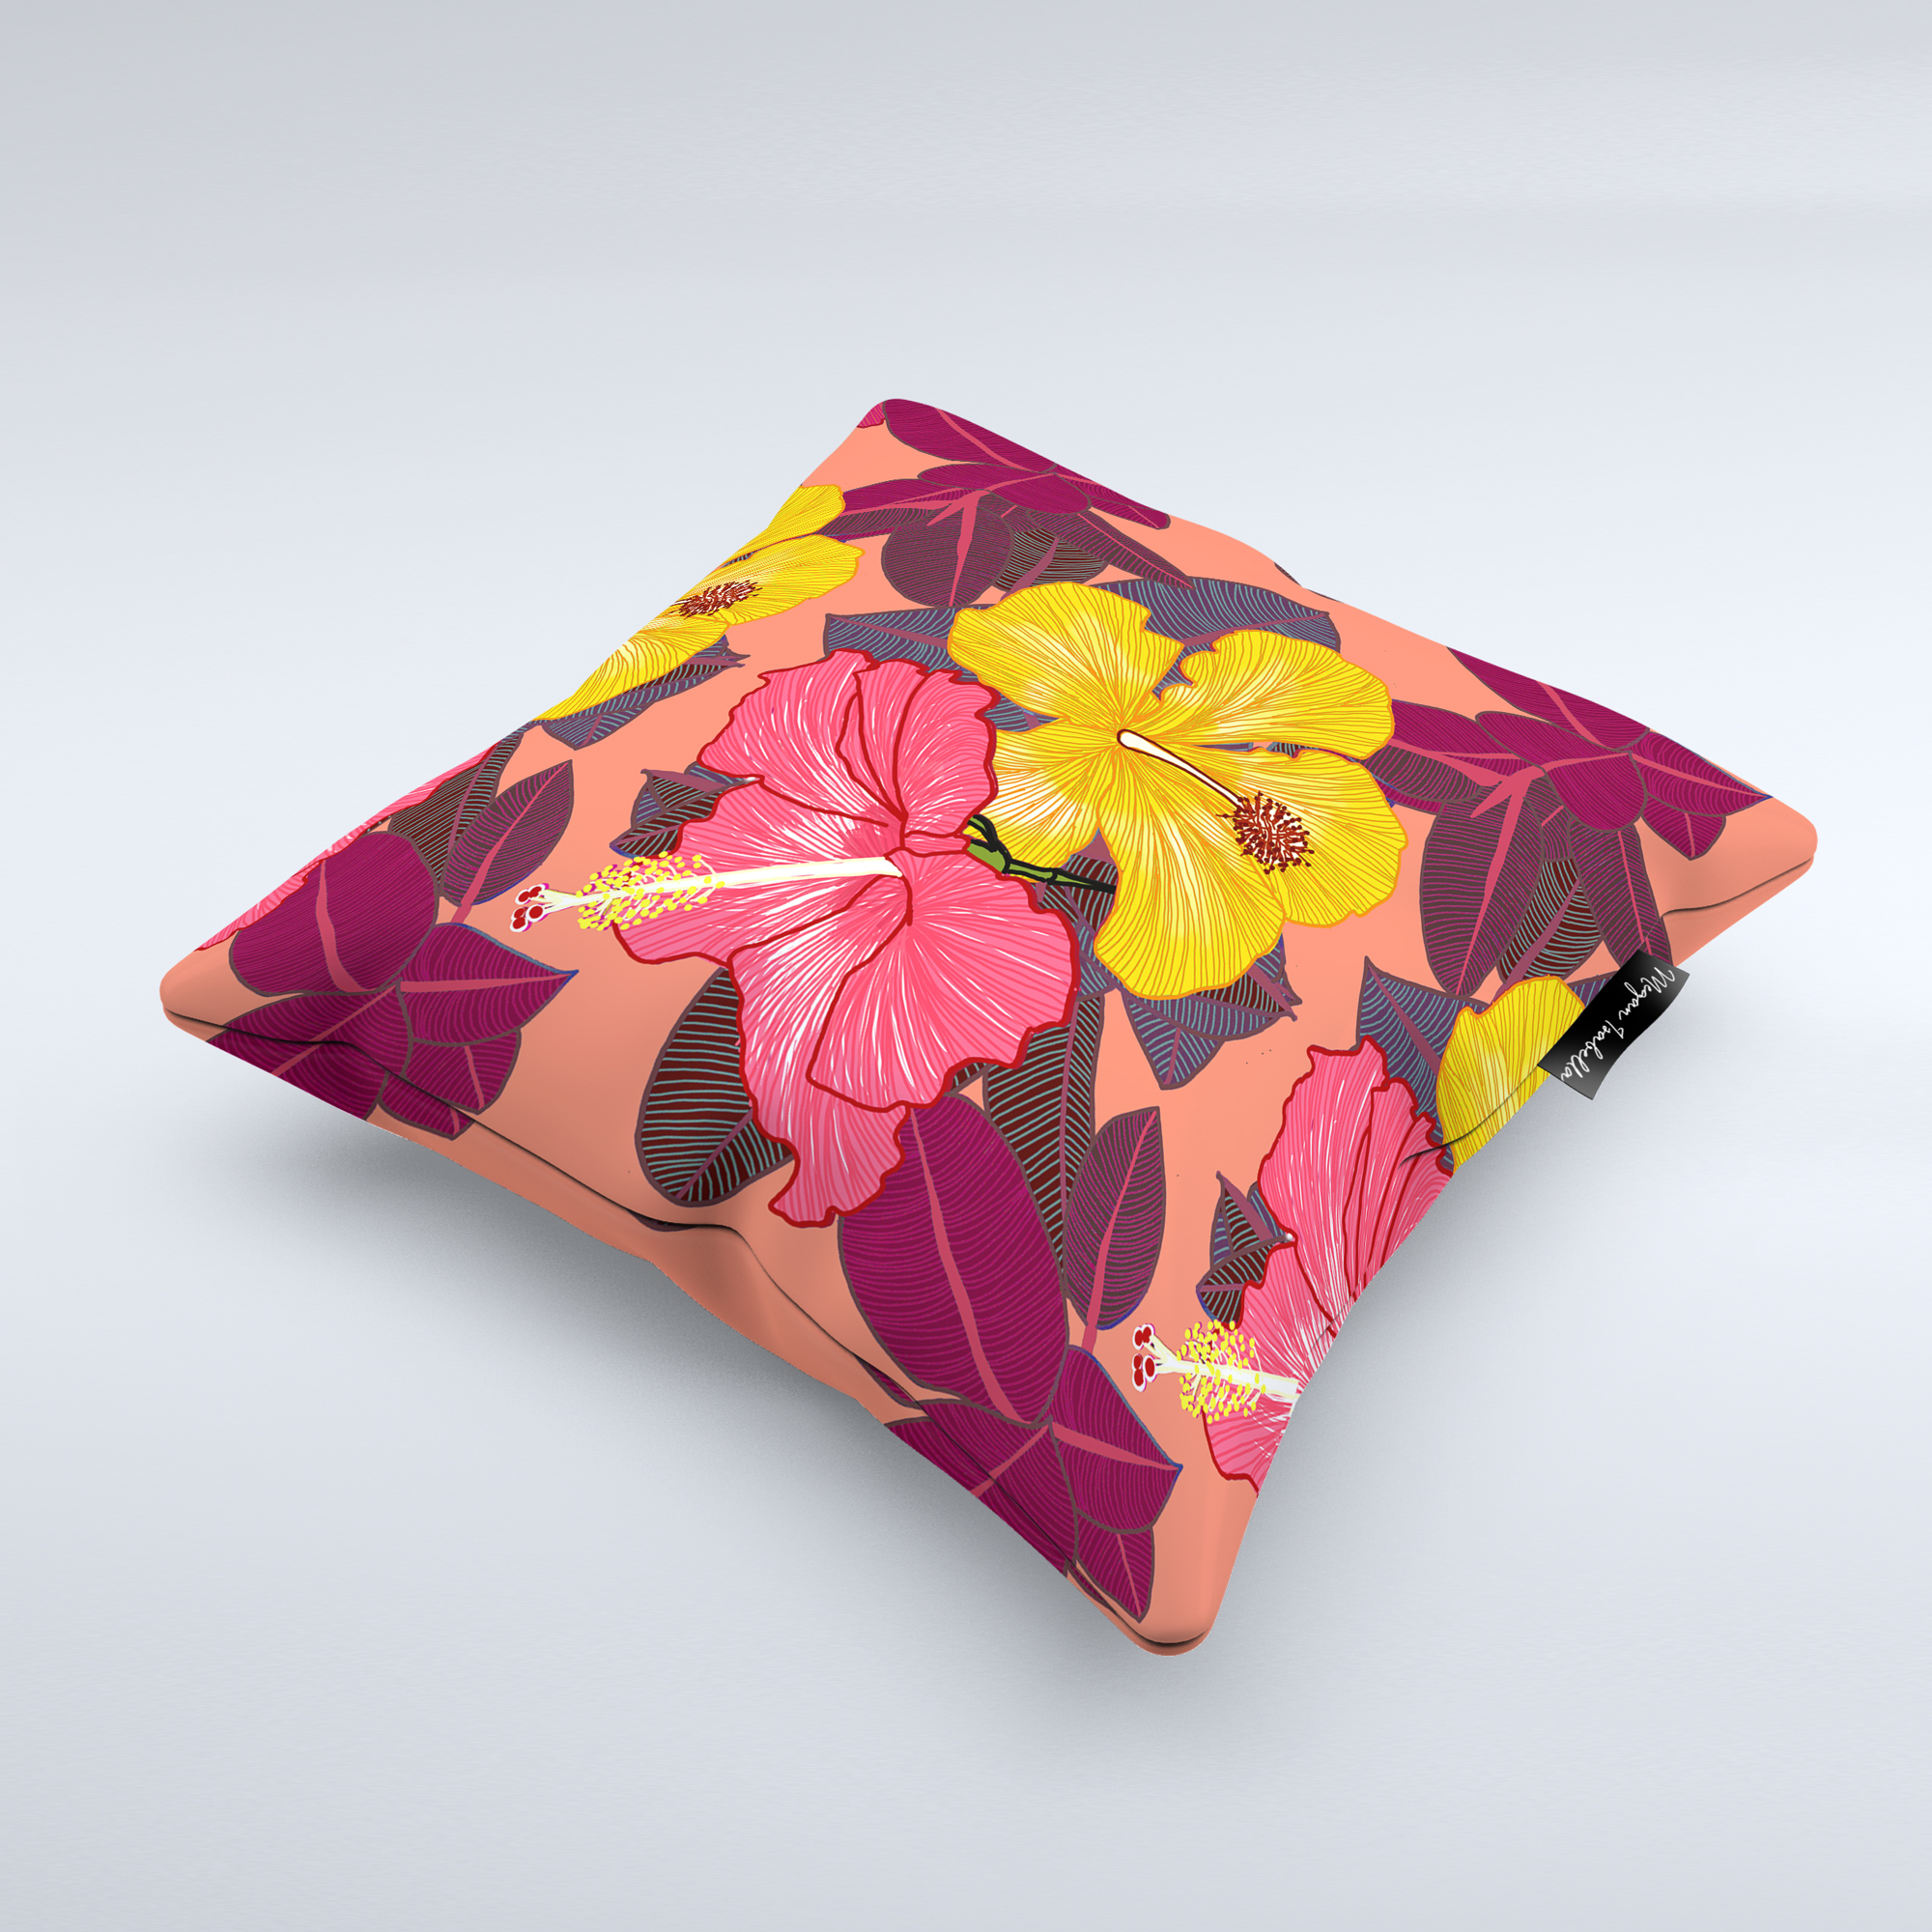 hibiscus-cushion.jpg